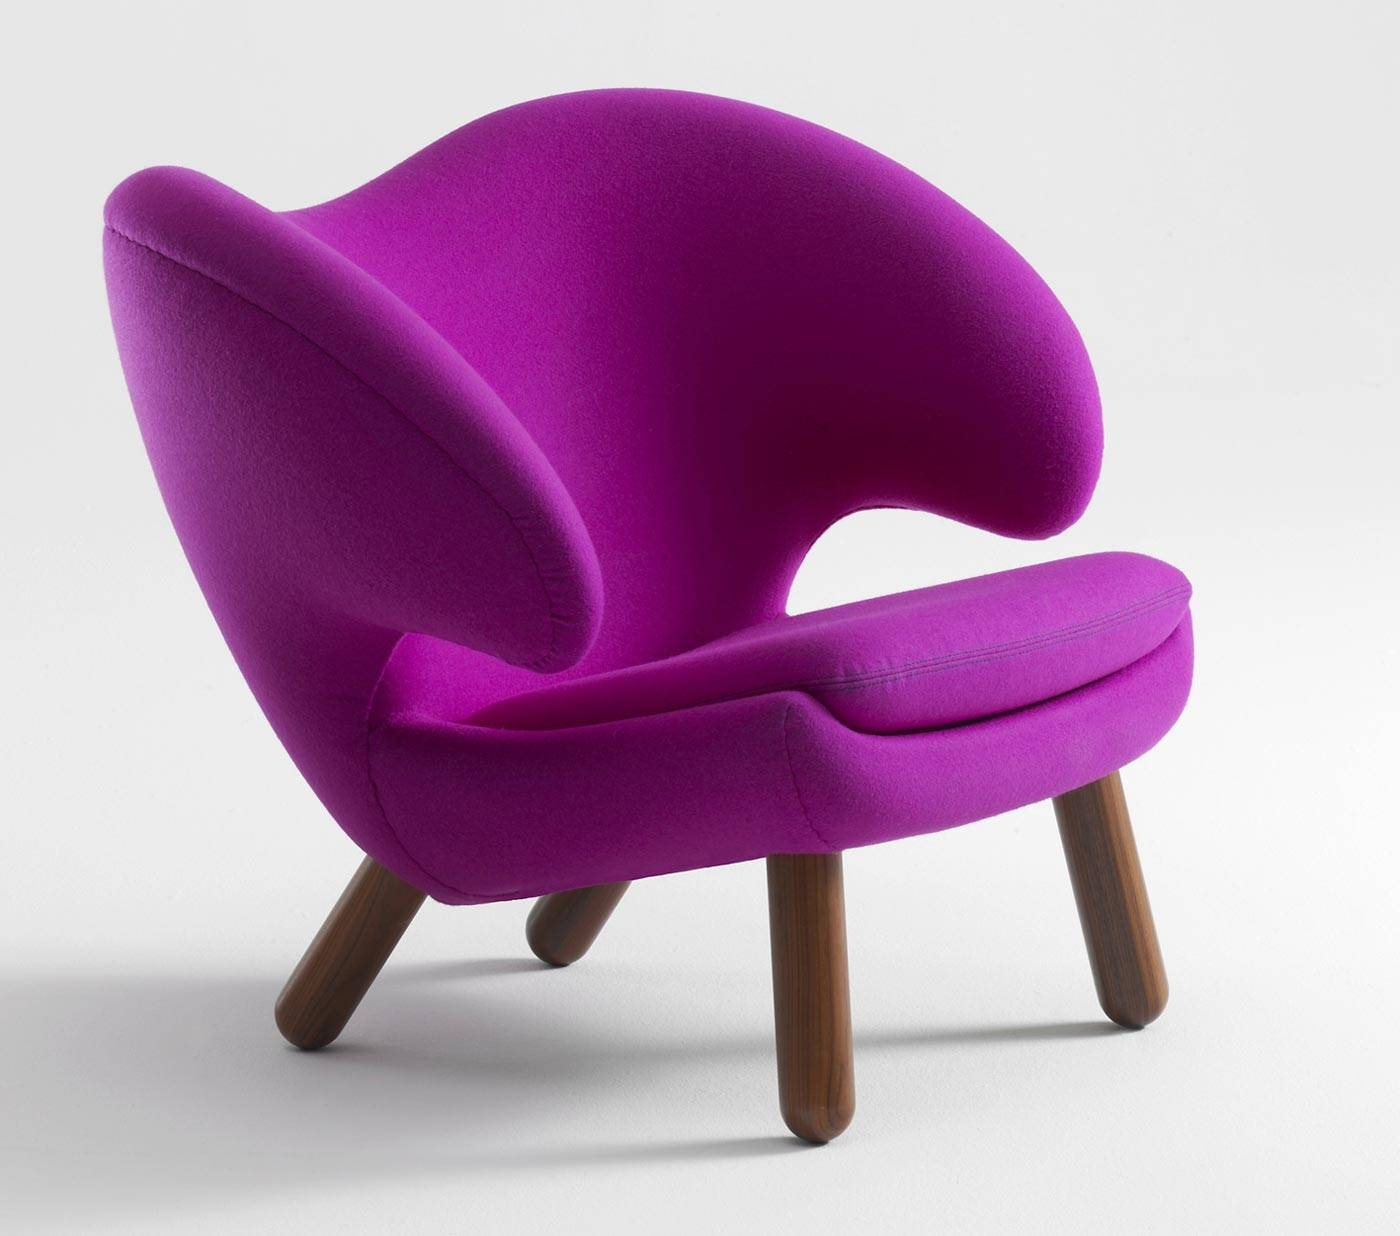 Chairs. Stunning Modern Furniture Chairs: Modern-Furniture-Chairs inside Contemporary Sofas And Chairs (Image 3 of 15)